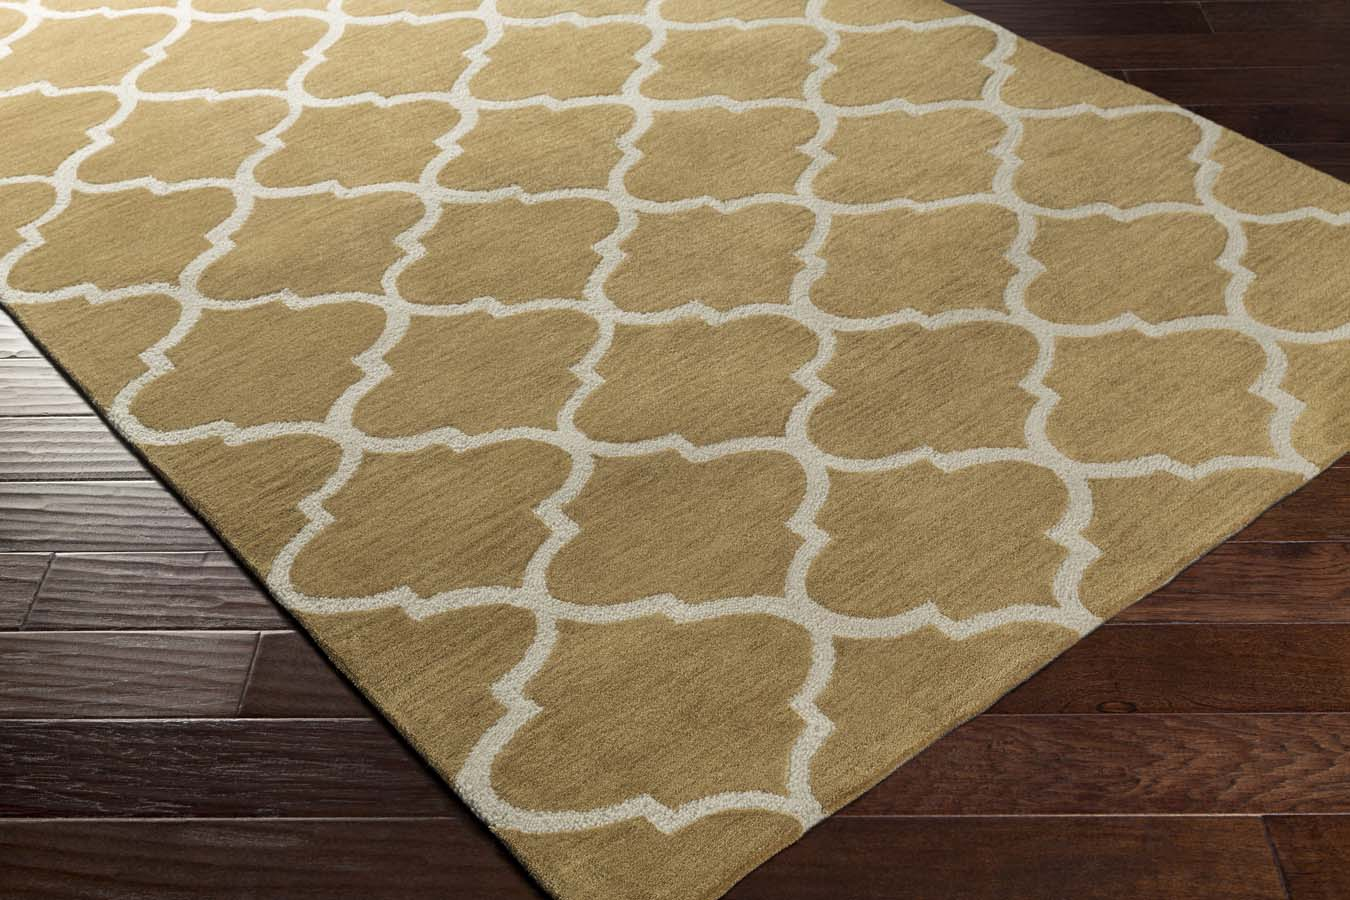 Artistic Weavers Holden AWHL-1015 Finley Tan/Ivory Rug